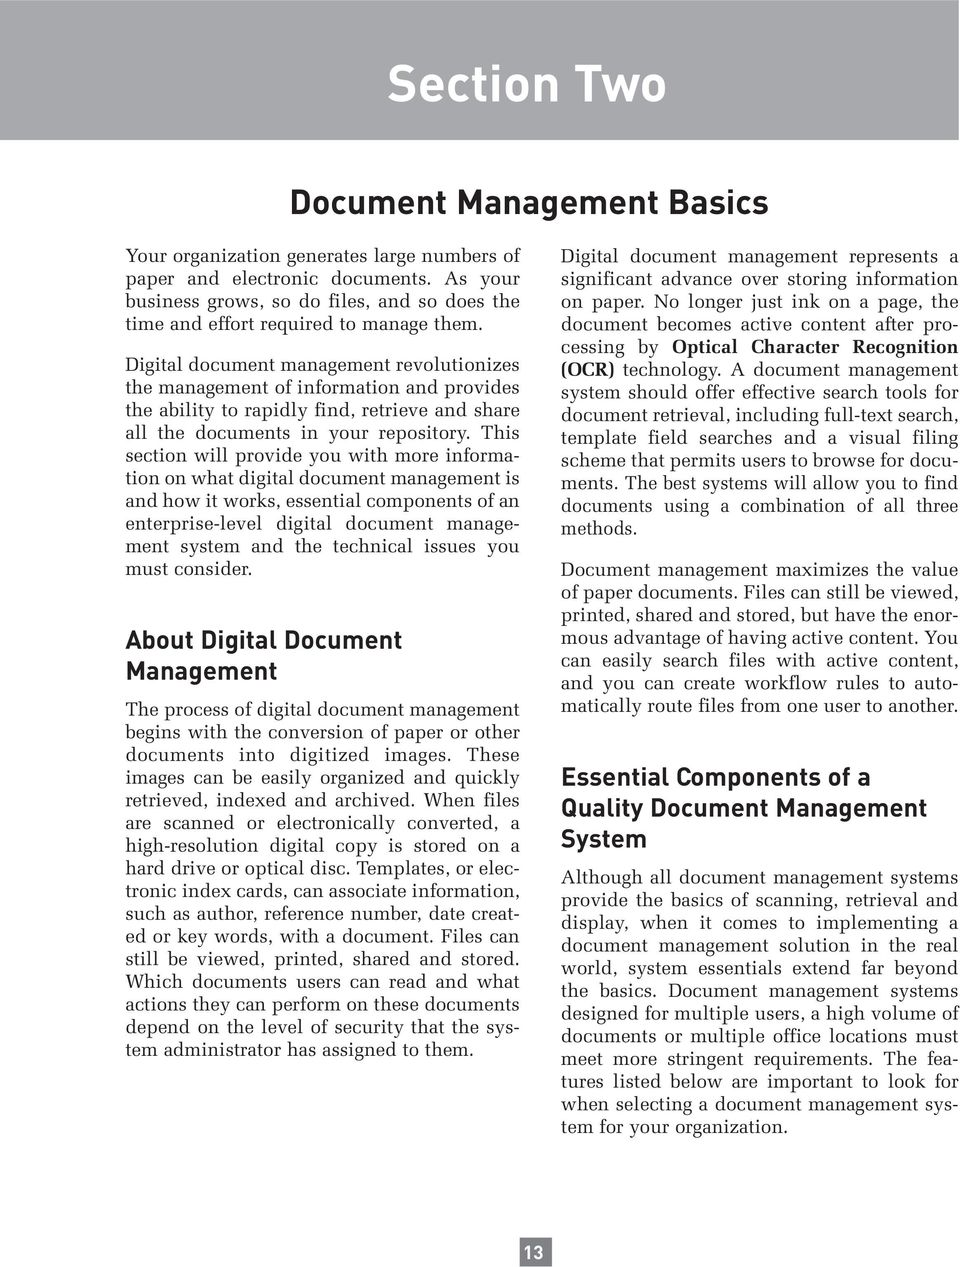 Digital document management revolutionizes the management of information and provides the ability to rapidly find, retrieve and share all the documents in your repository.